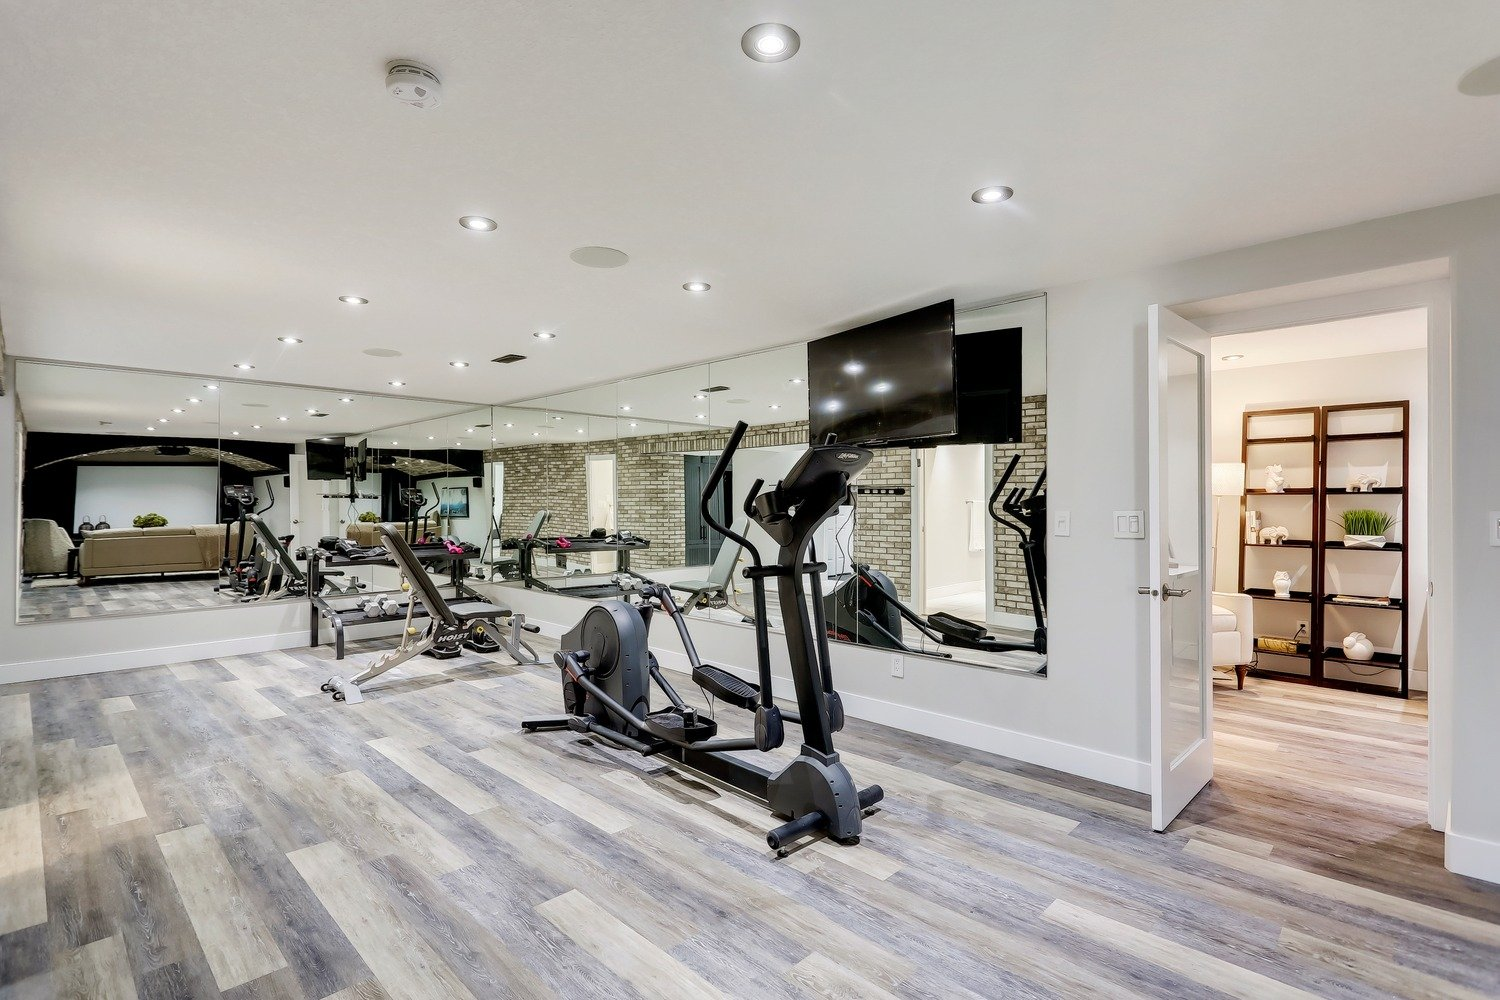 Gym Room Remodeled